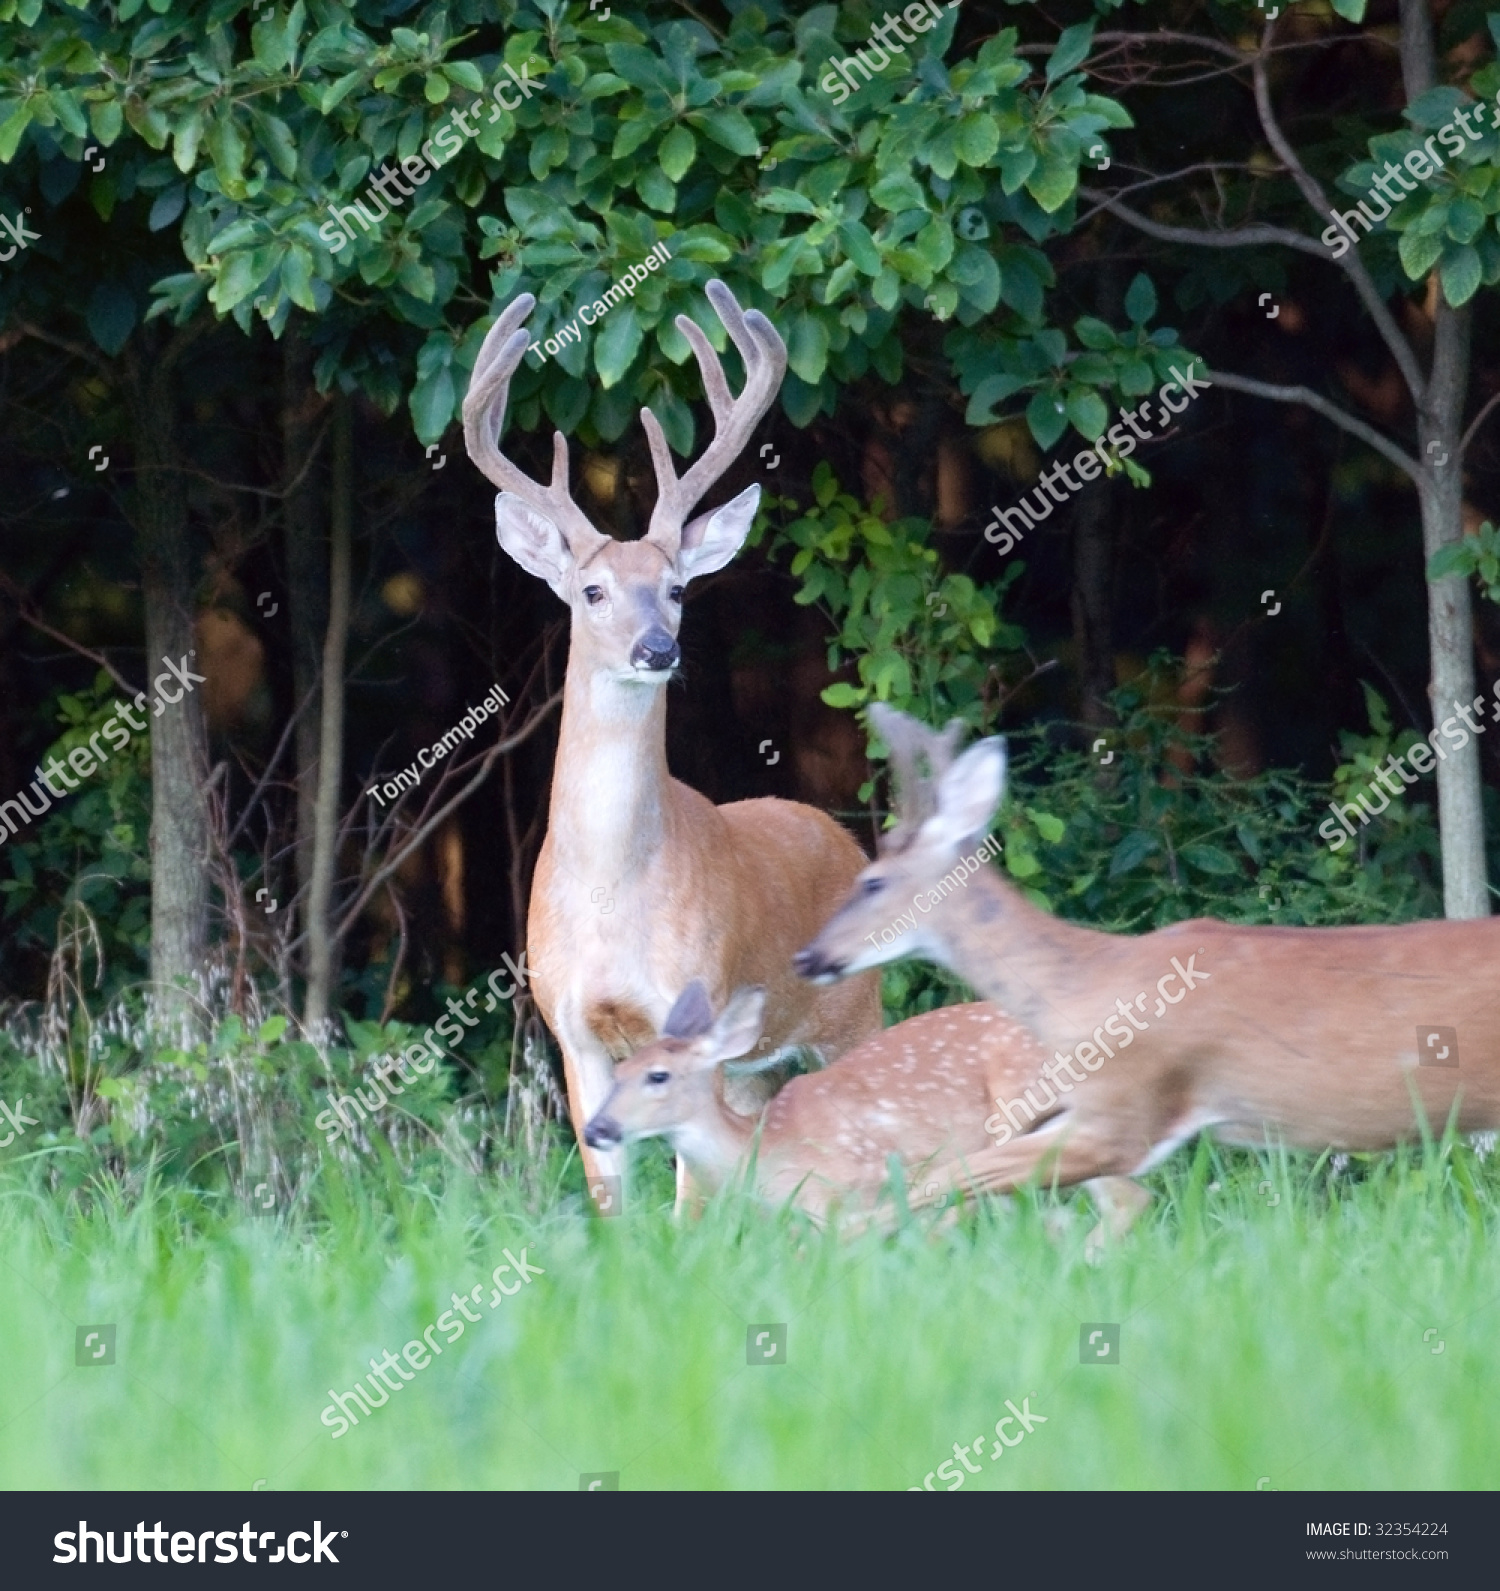 A Whitetail Deer Buck Stands Still While Does And Fawns Flee. Motion Blur In Running Animals. Stock Photo 32354224 : Shutterstock